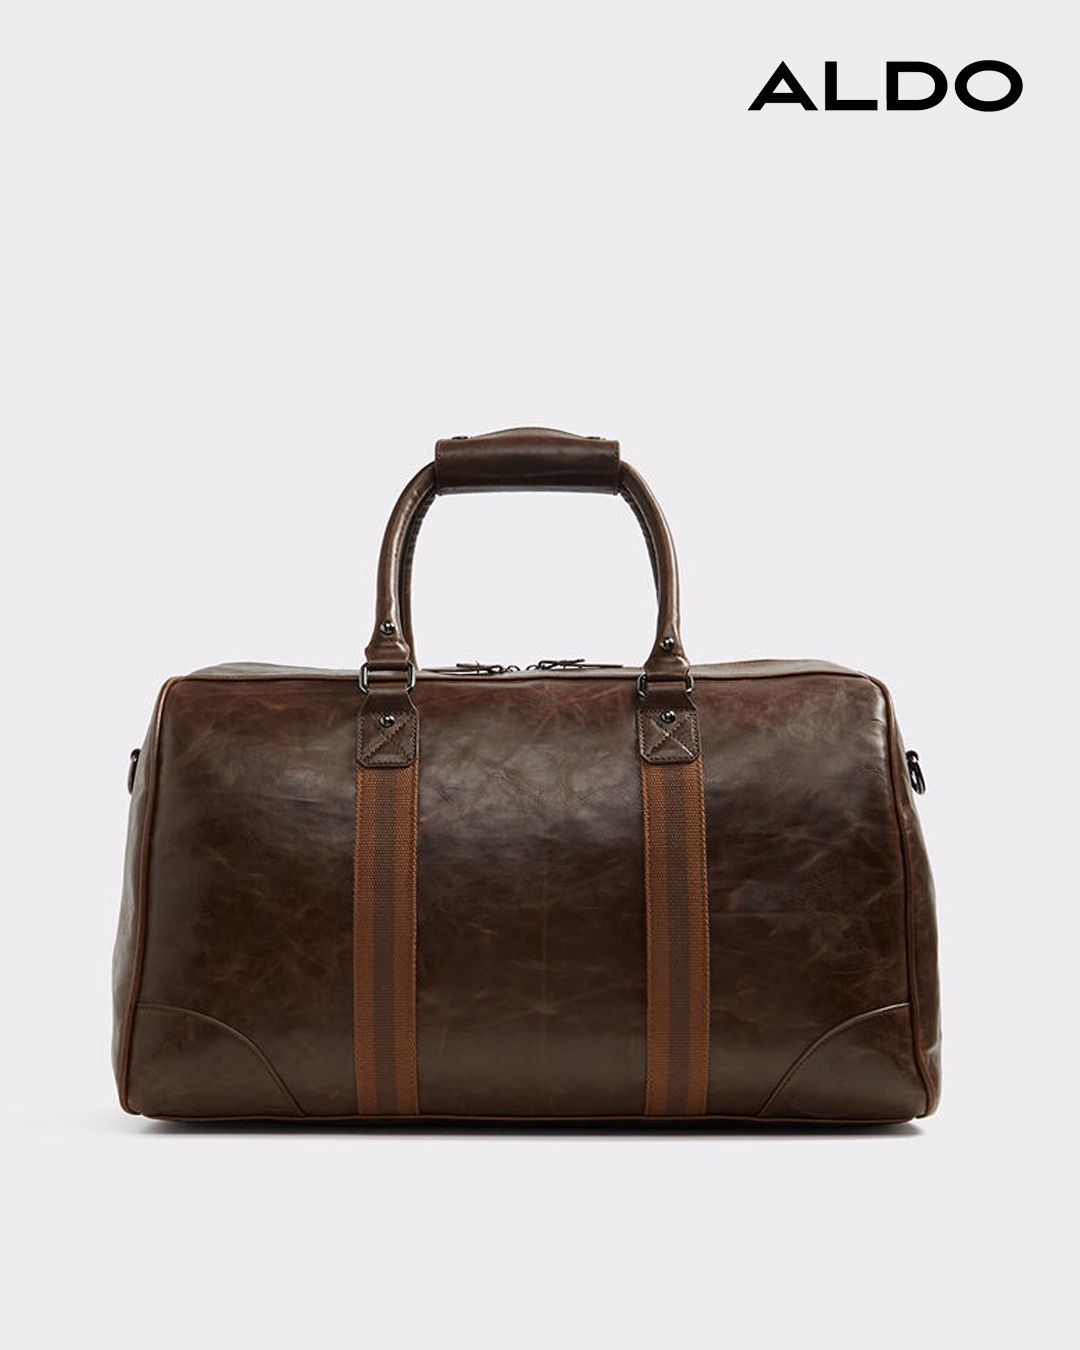 3a3c7c76a8e Our multi-functional men s weekender serves as a great gym bag or travel  companion.